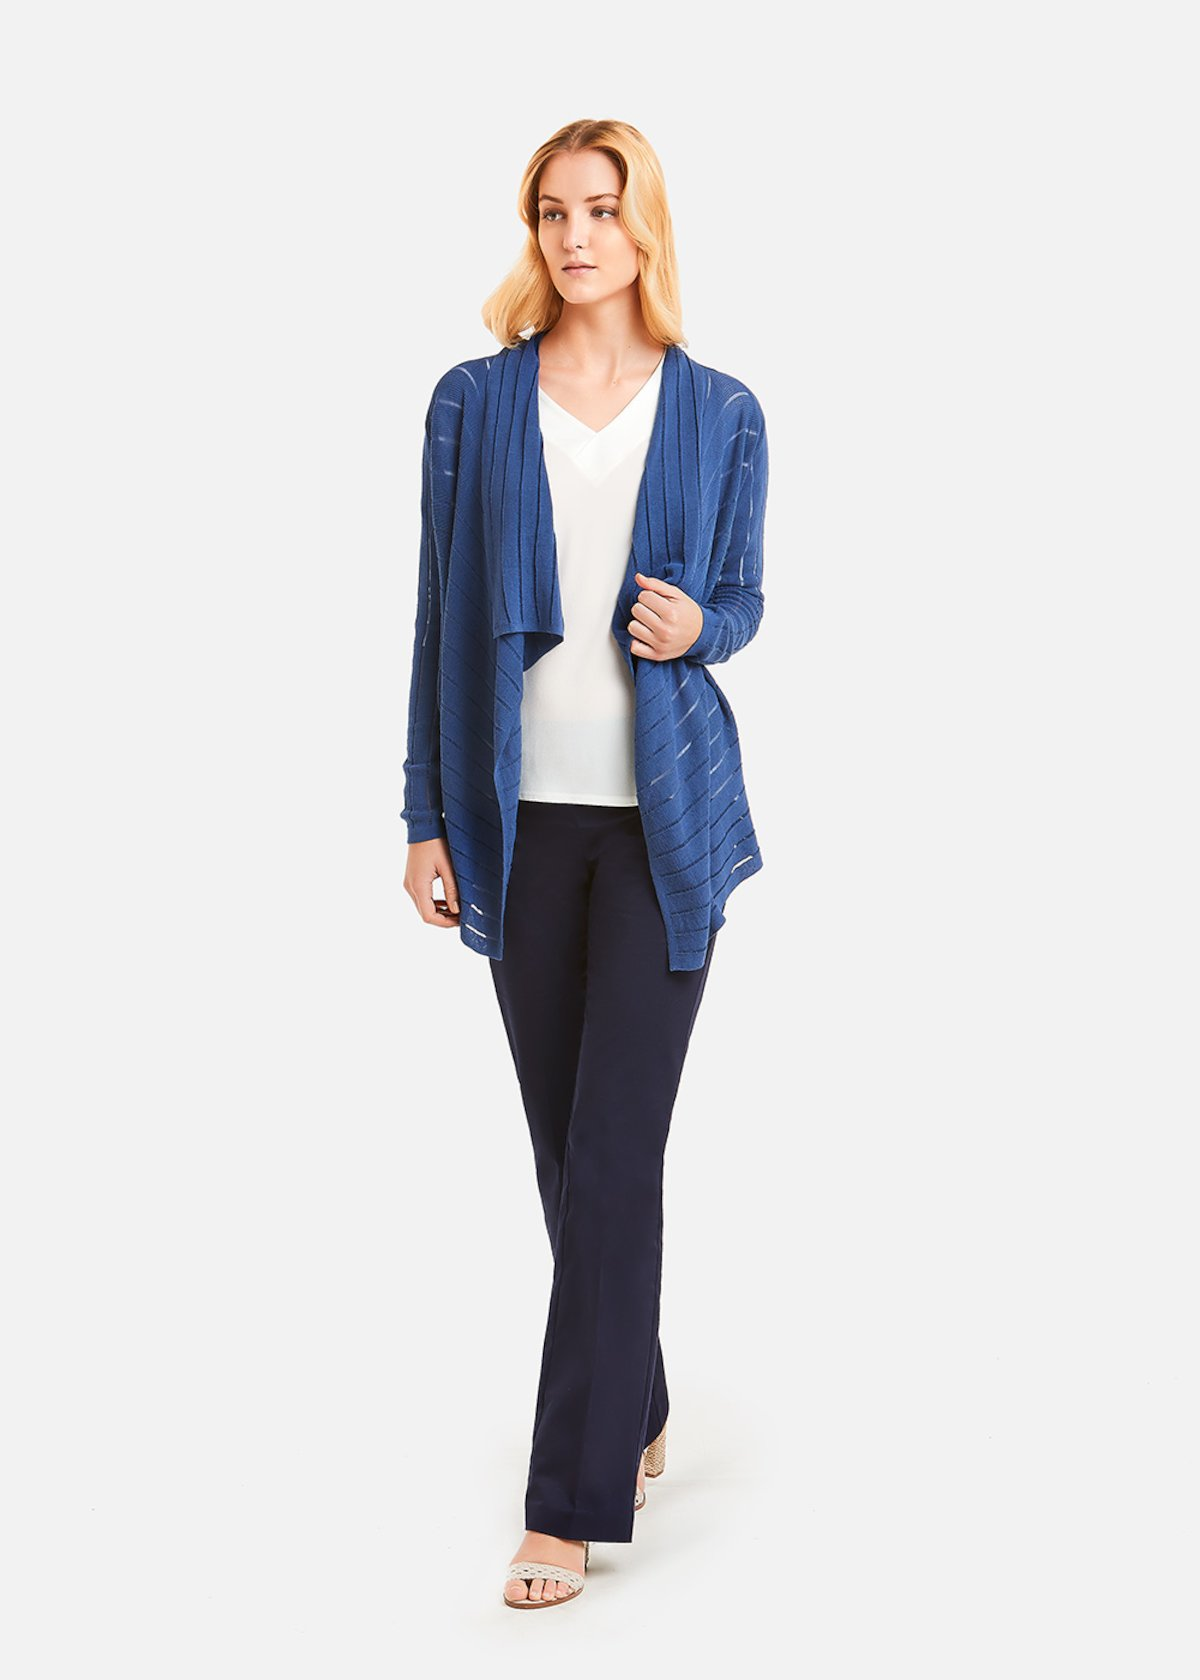 Cardigan Calien vertical stripe